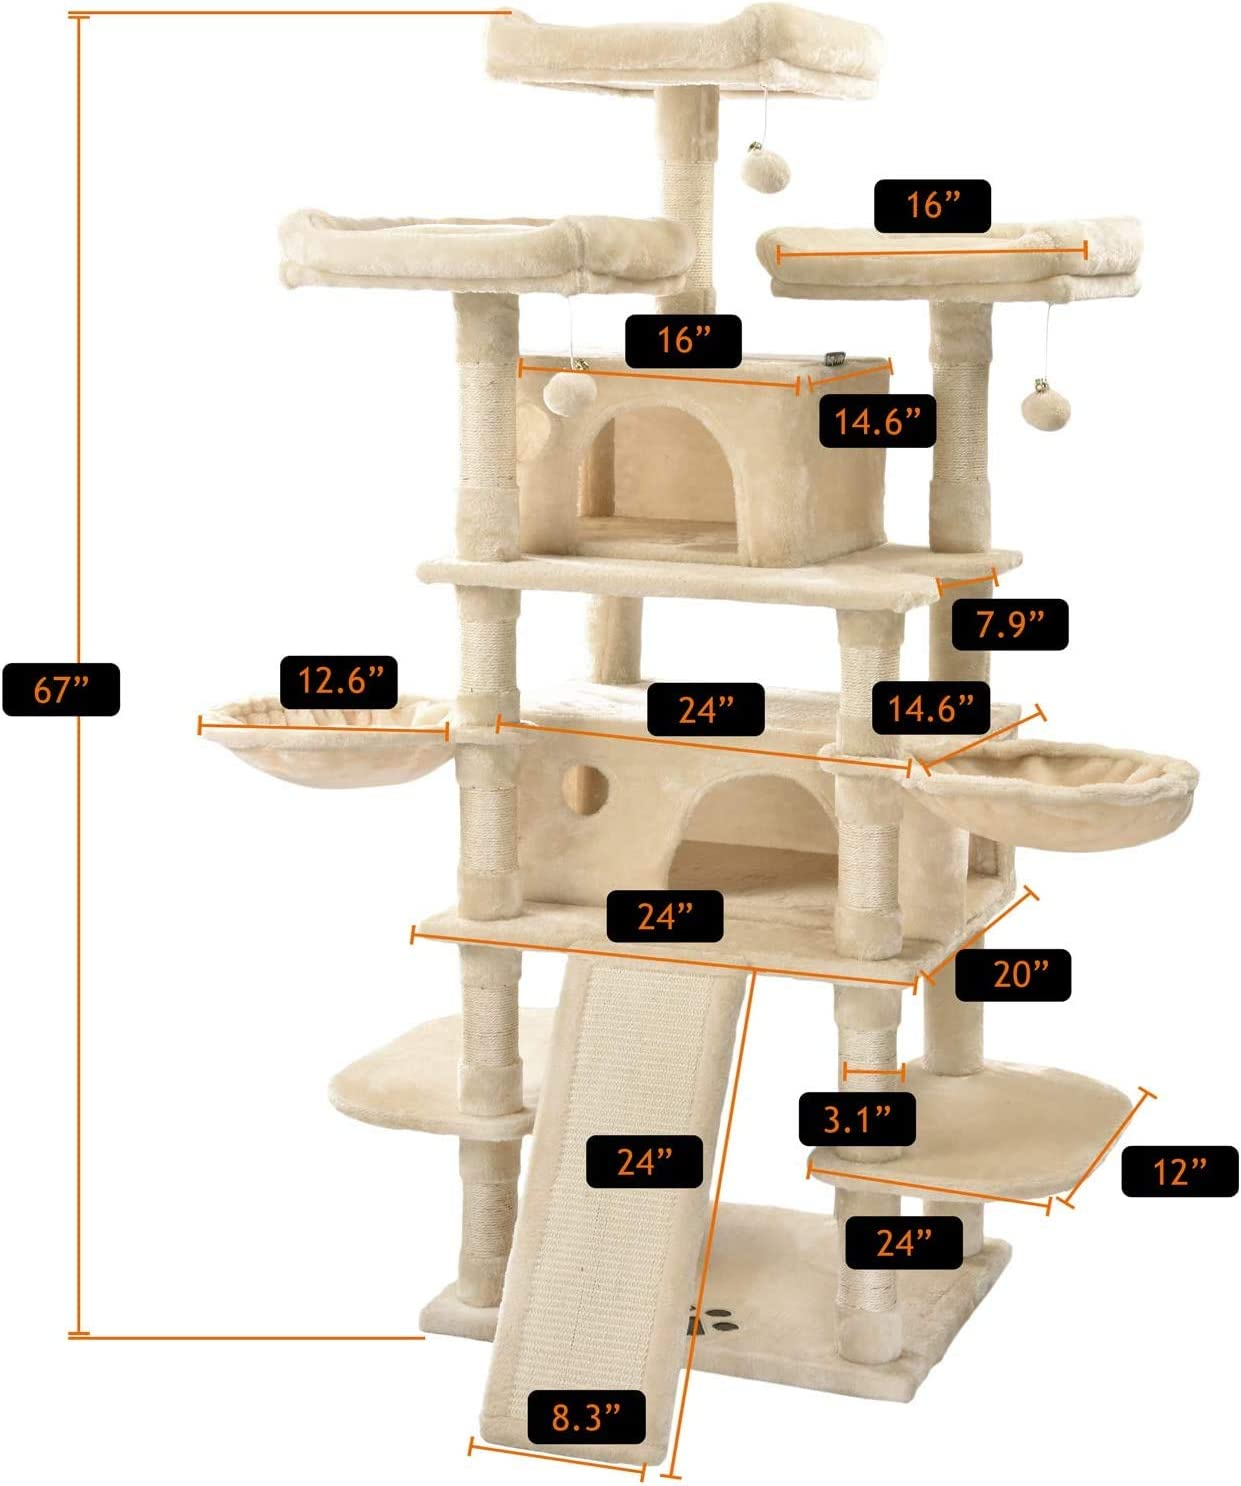 Amolife 68 Inches Multi-Level Large Cat Tree for Large Cats Big Cat Tower with Cat Condo Cozy Plush Cat Perches Sisal Scratching Posts and Hammocks Cat Activity Center Play House